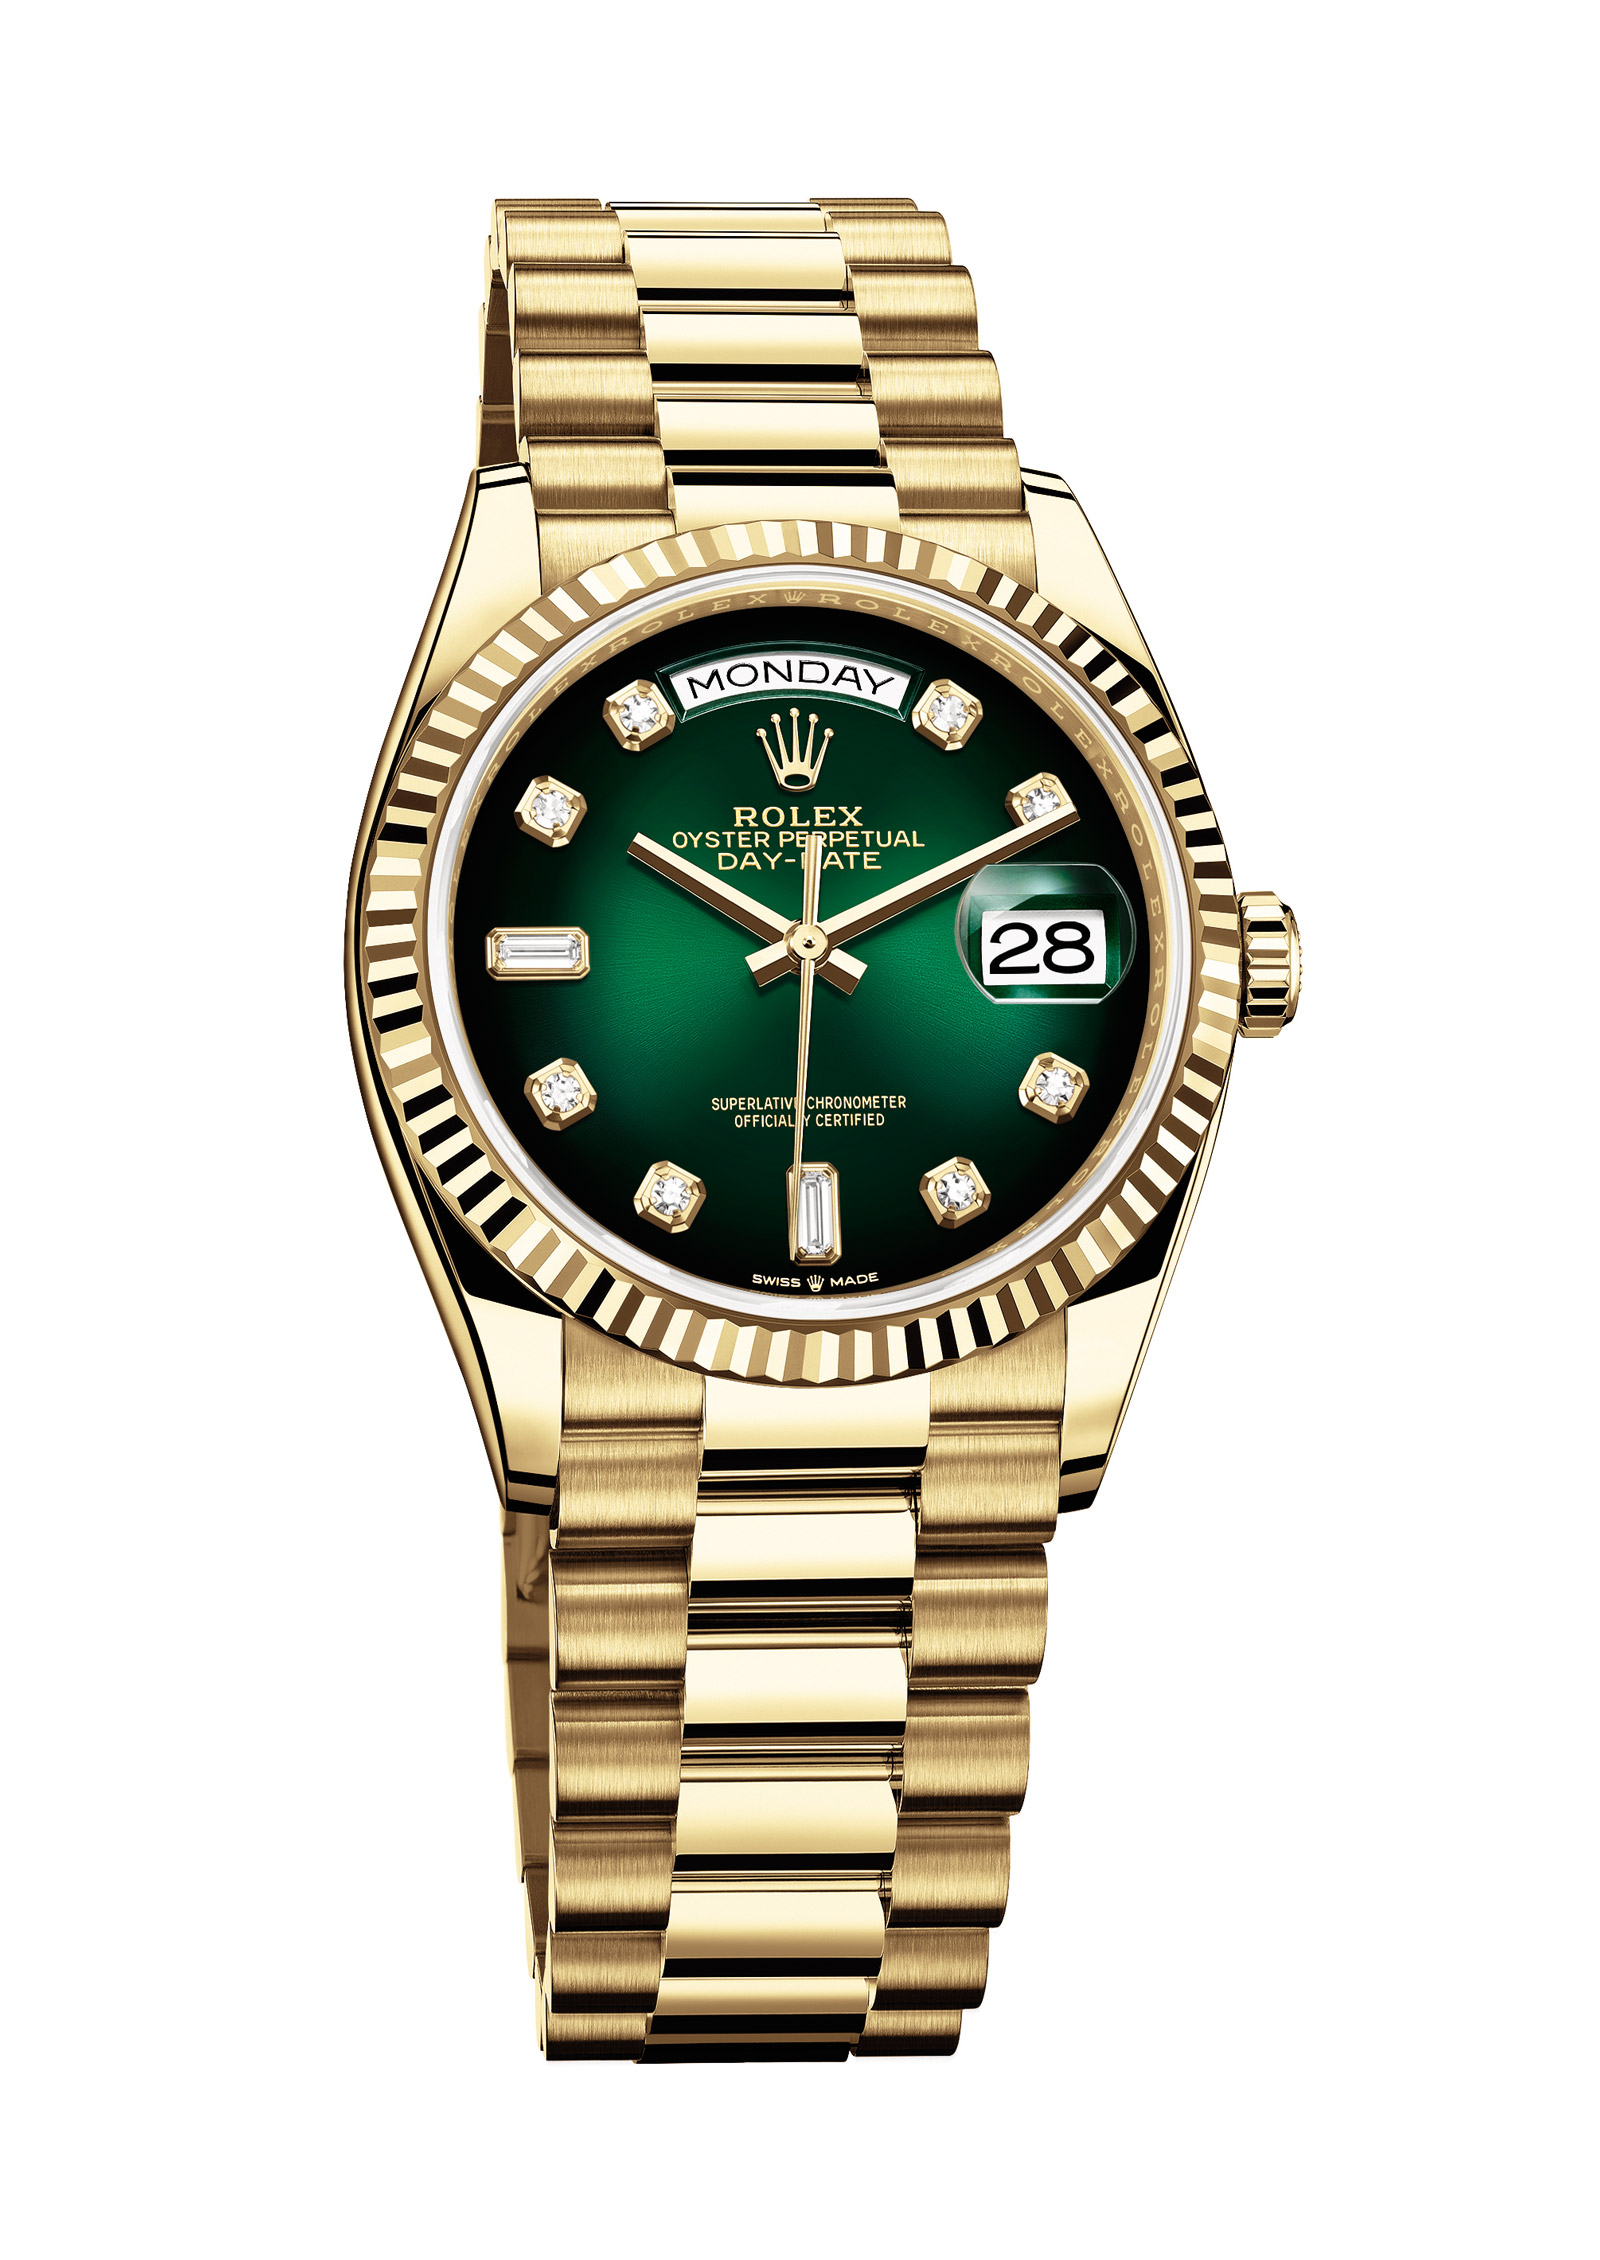 Rolex Day-Date 36 with a green ombré, diamond-set dial - Ref. 128238